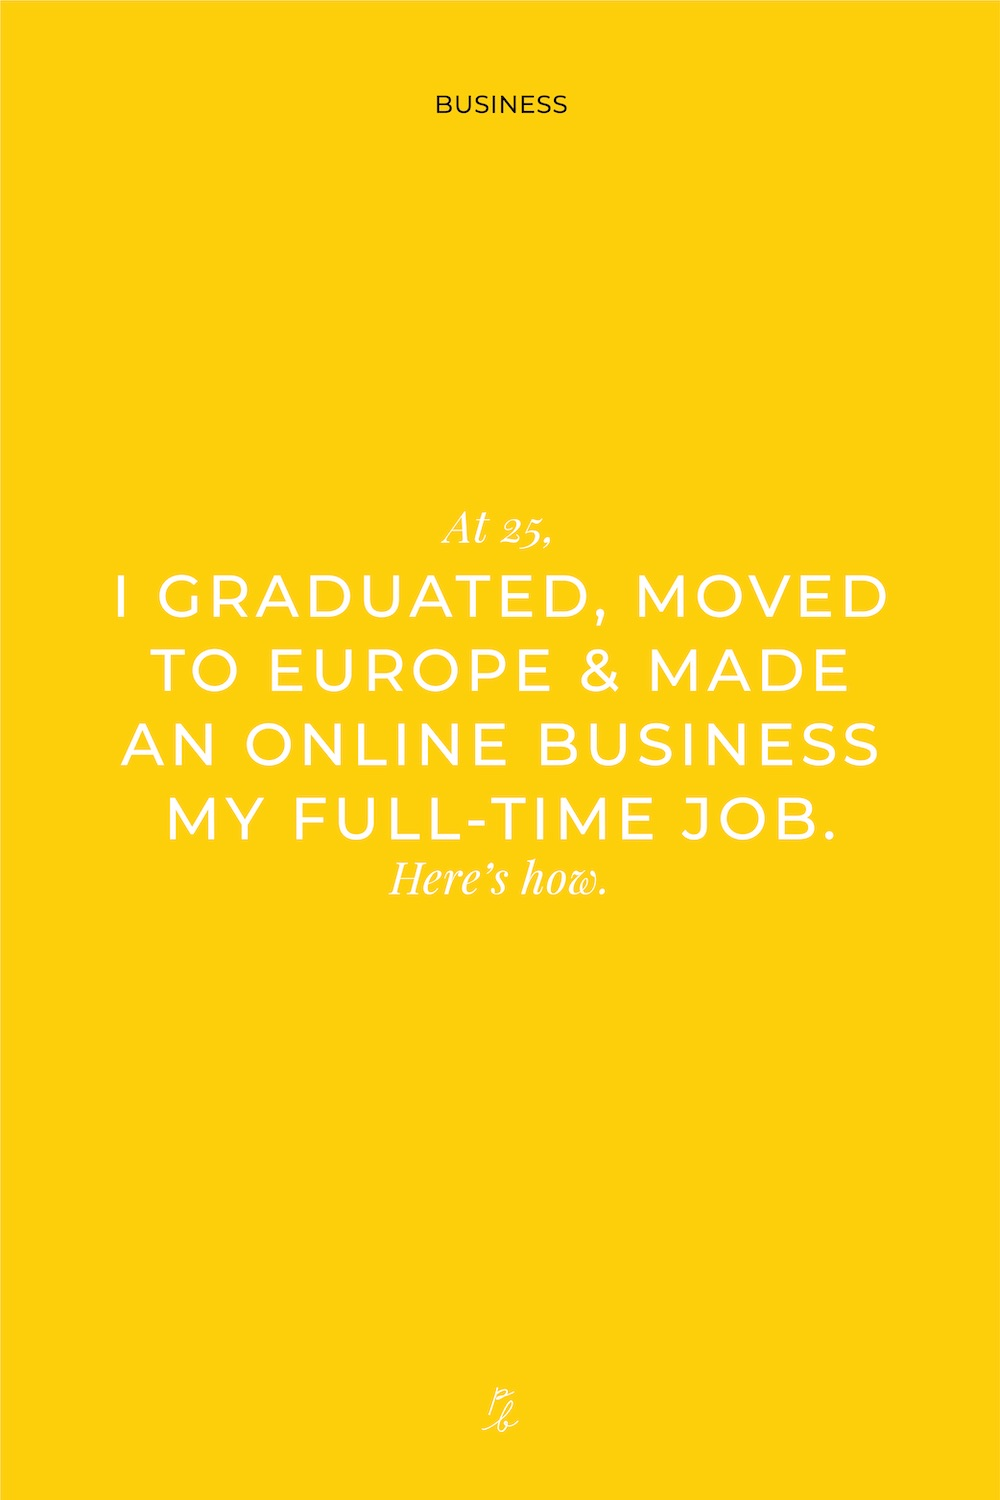 5-At 25, I GRADUATED, MOVED TO EUROPE & MADE AN ONLINE BUSINESS MY FULL-TIME JOB. Here's how.     .jpg